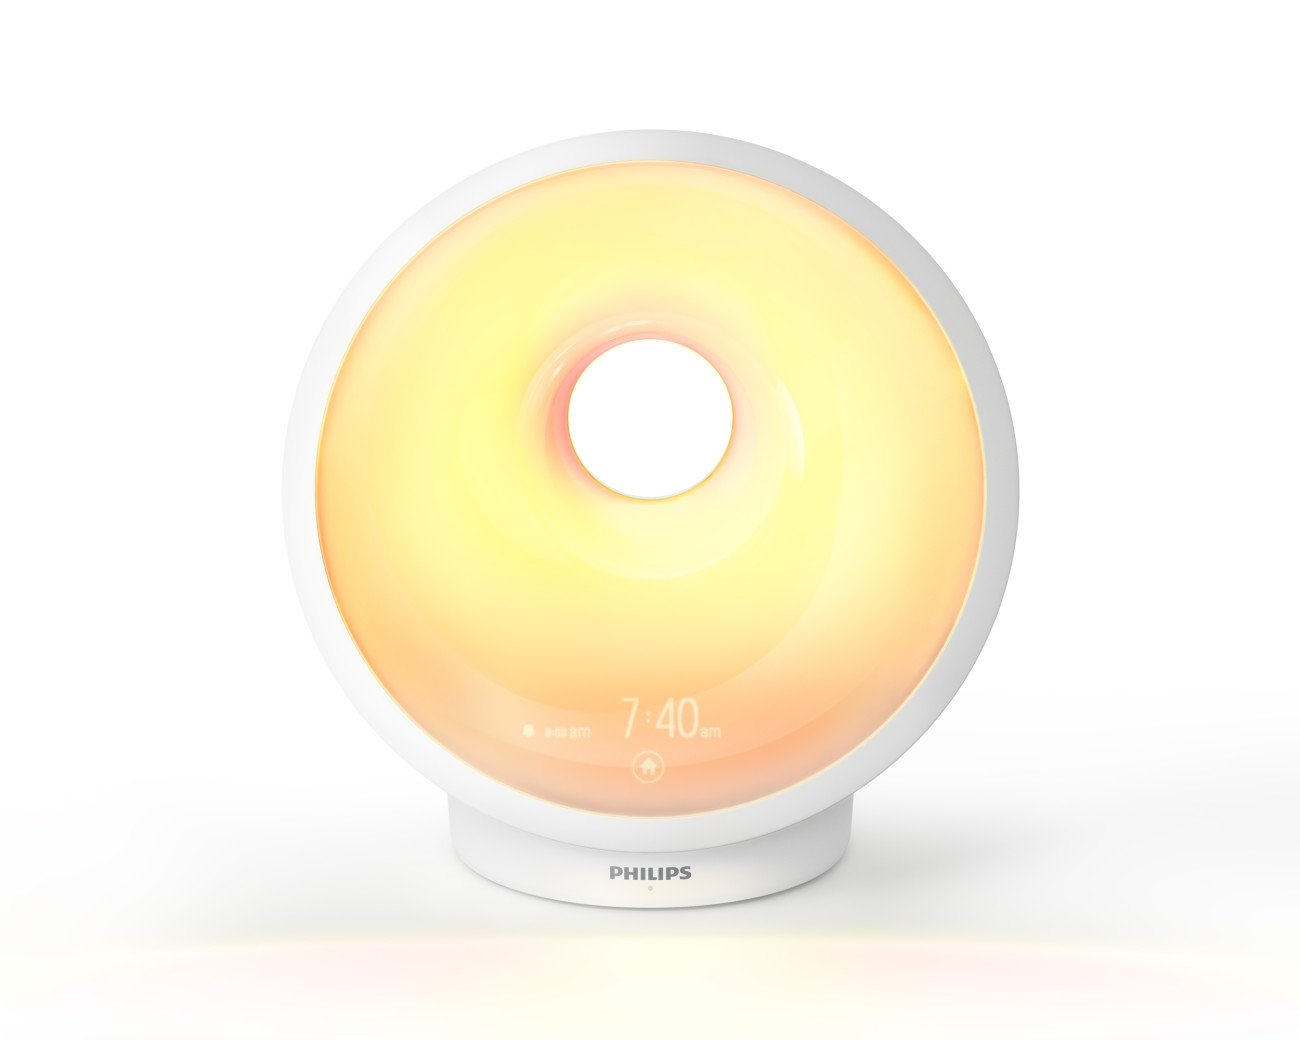 Philips Somneo Sunrise Wake-up and Sleep Therapy Light with Alarm Clock, White, HF3650/60